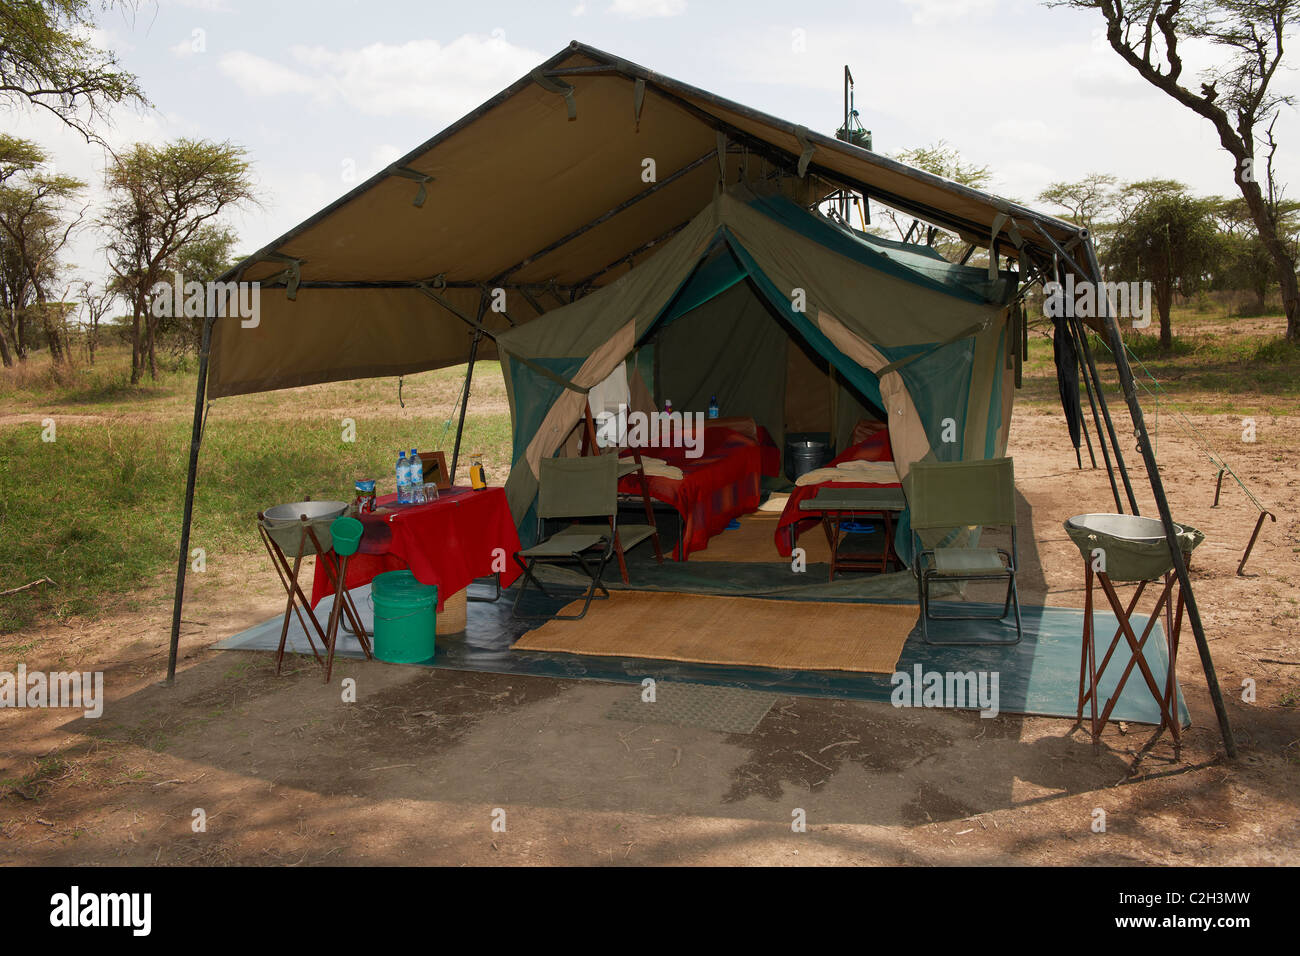 luxury tent in wilderness of Luxury Mobile Safari Tended Camp, Serengeti, Tanzania, Africa - Stock Image